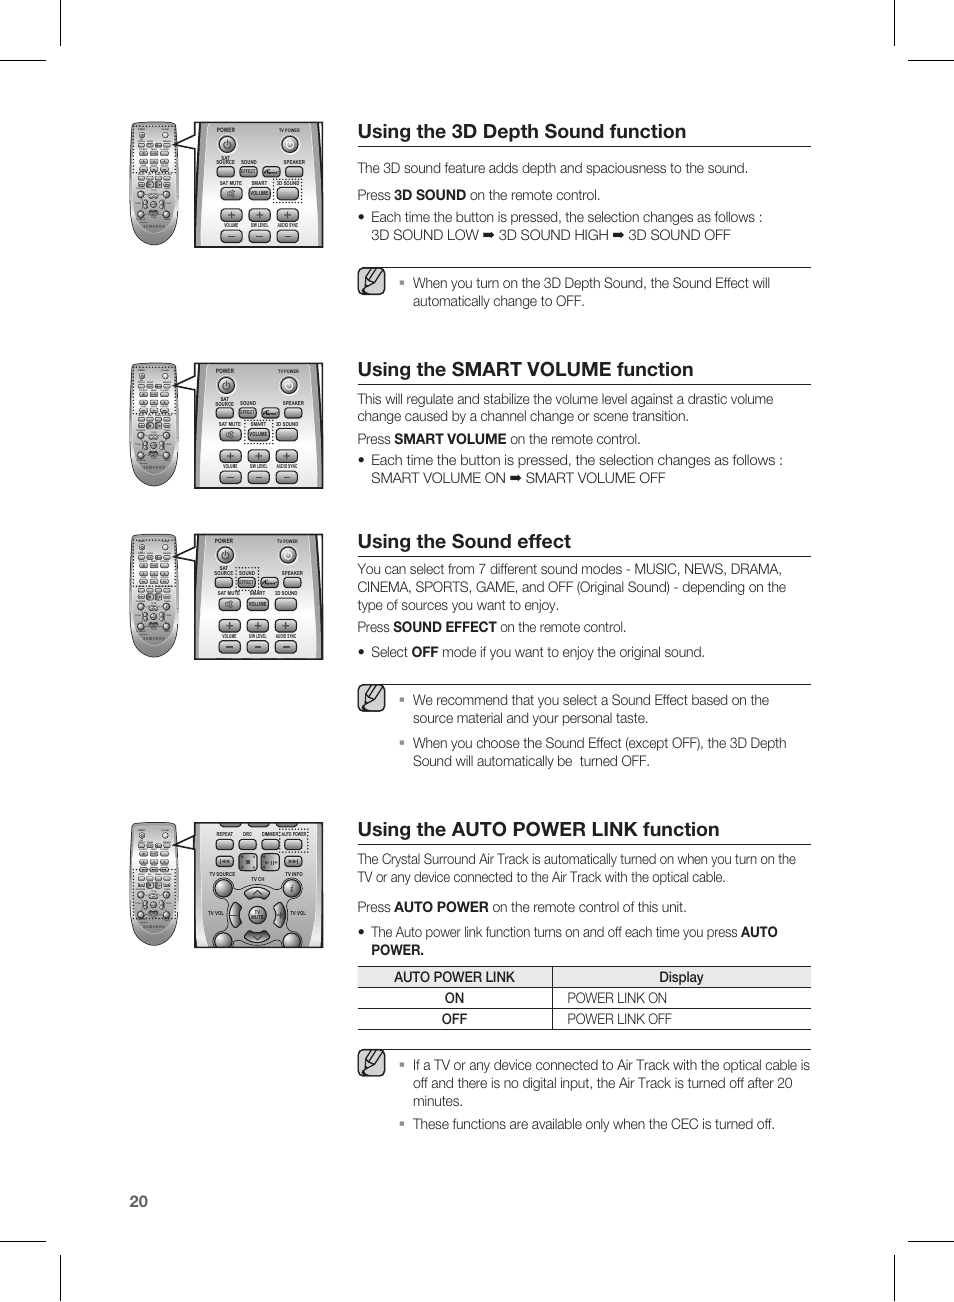 Using The 3d Depth Sound Function Smart Volume Auto Off Power Source Effect Samsung Hw E450 Za User Manual Page 20 26